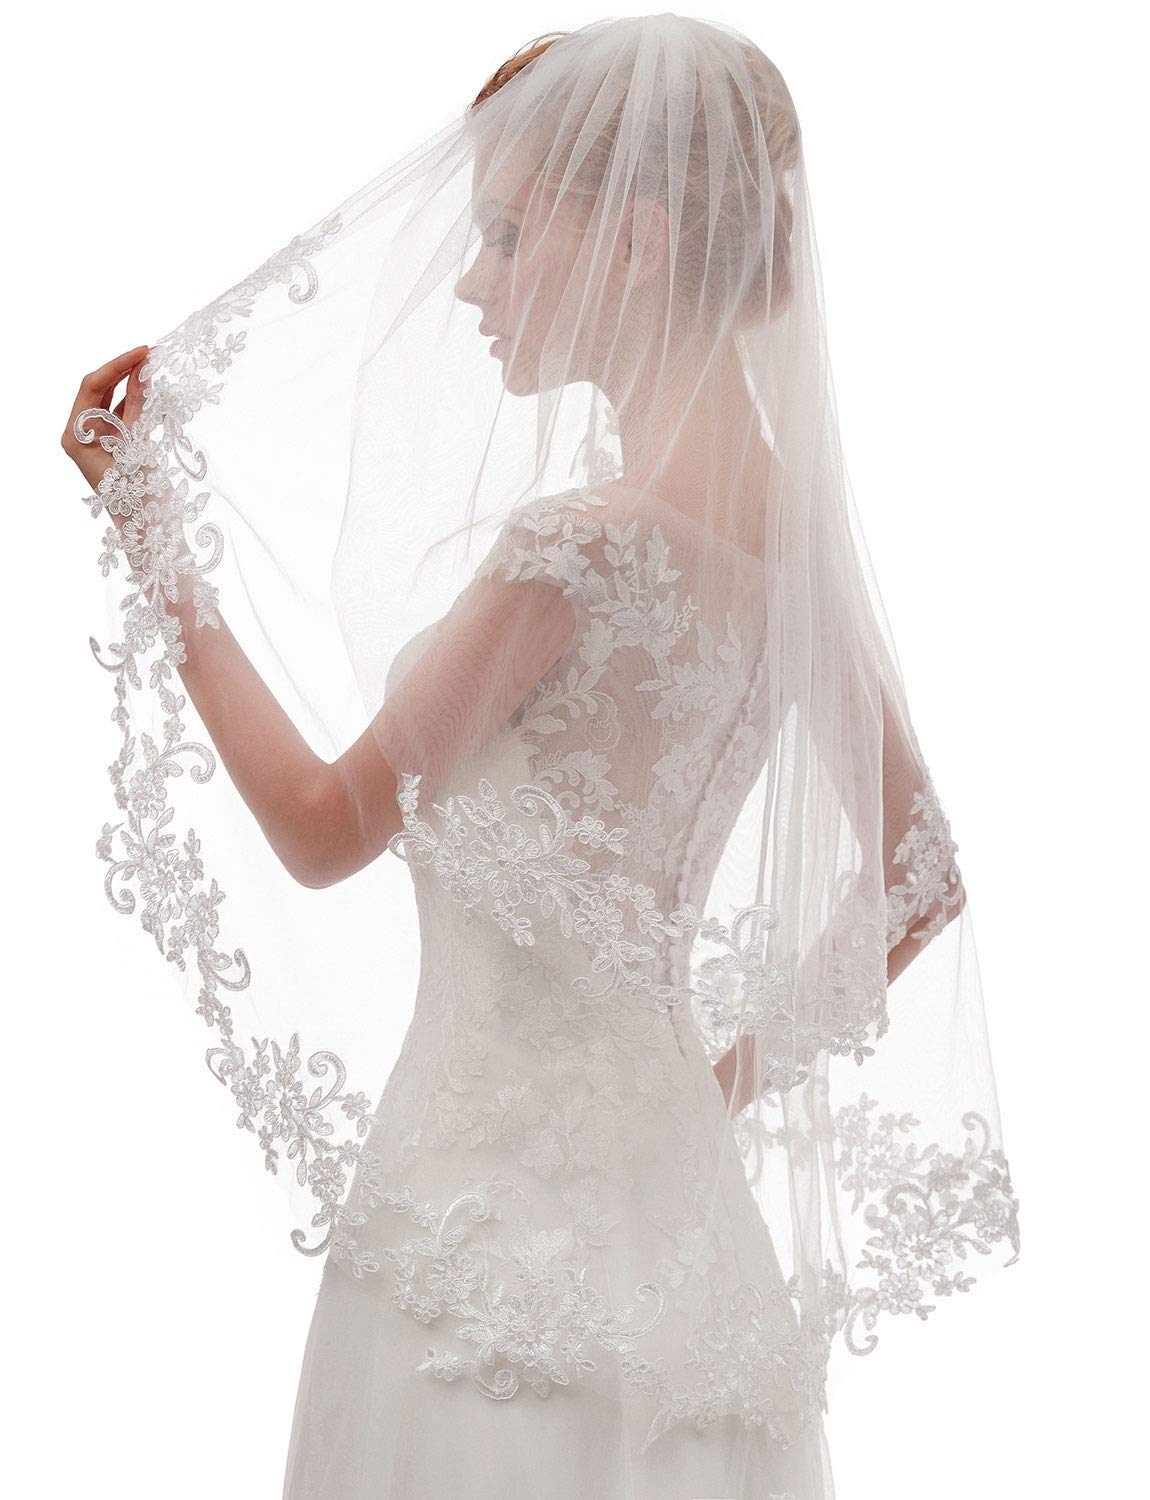 EllieHouse Women's Short 2 Tier Lace Ivory Wedding Bridal Veil With Comb L24IV by EllieHouse